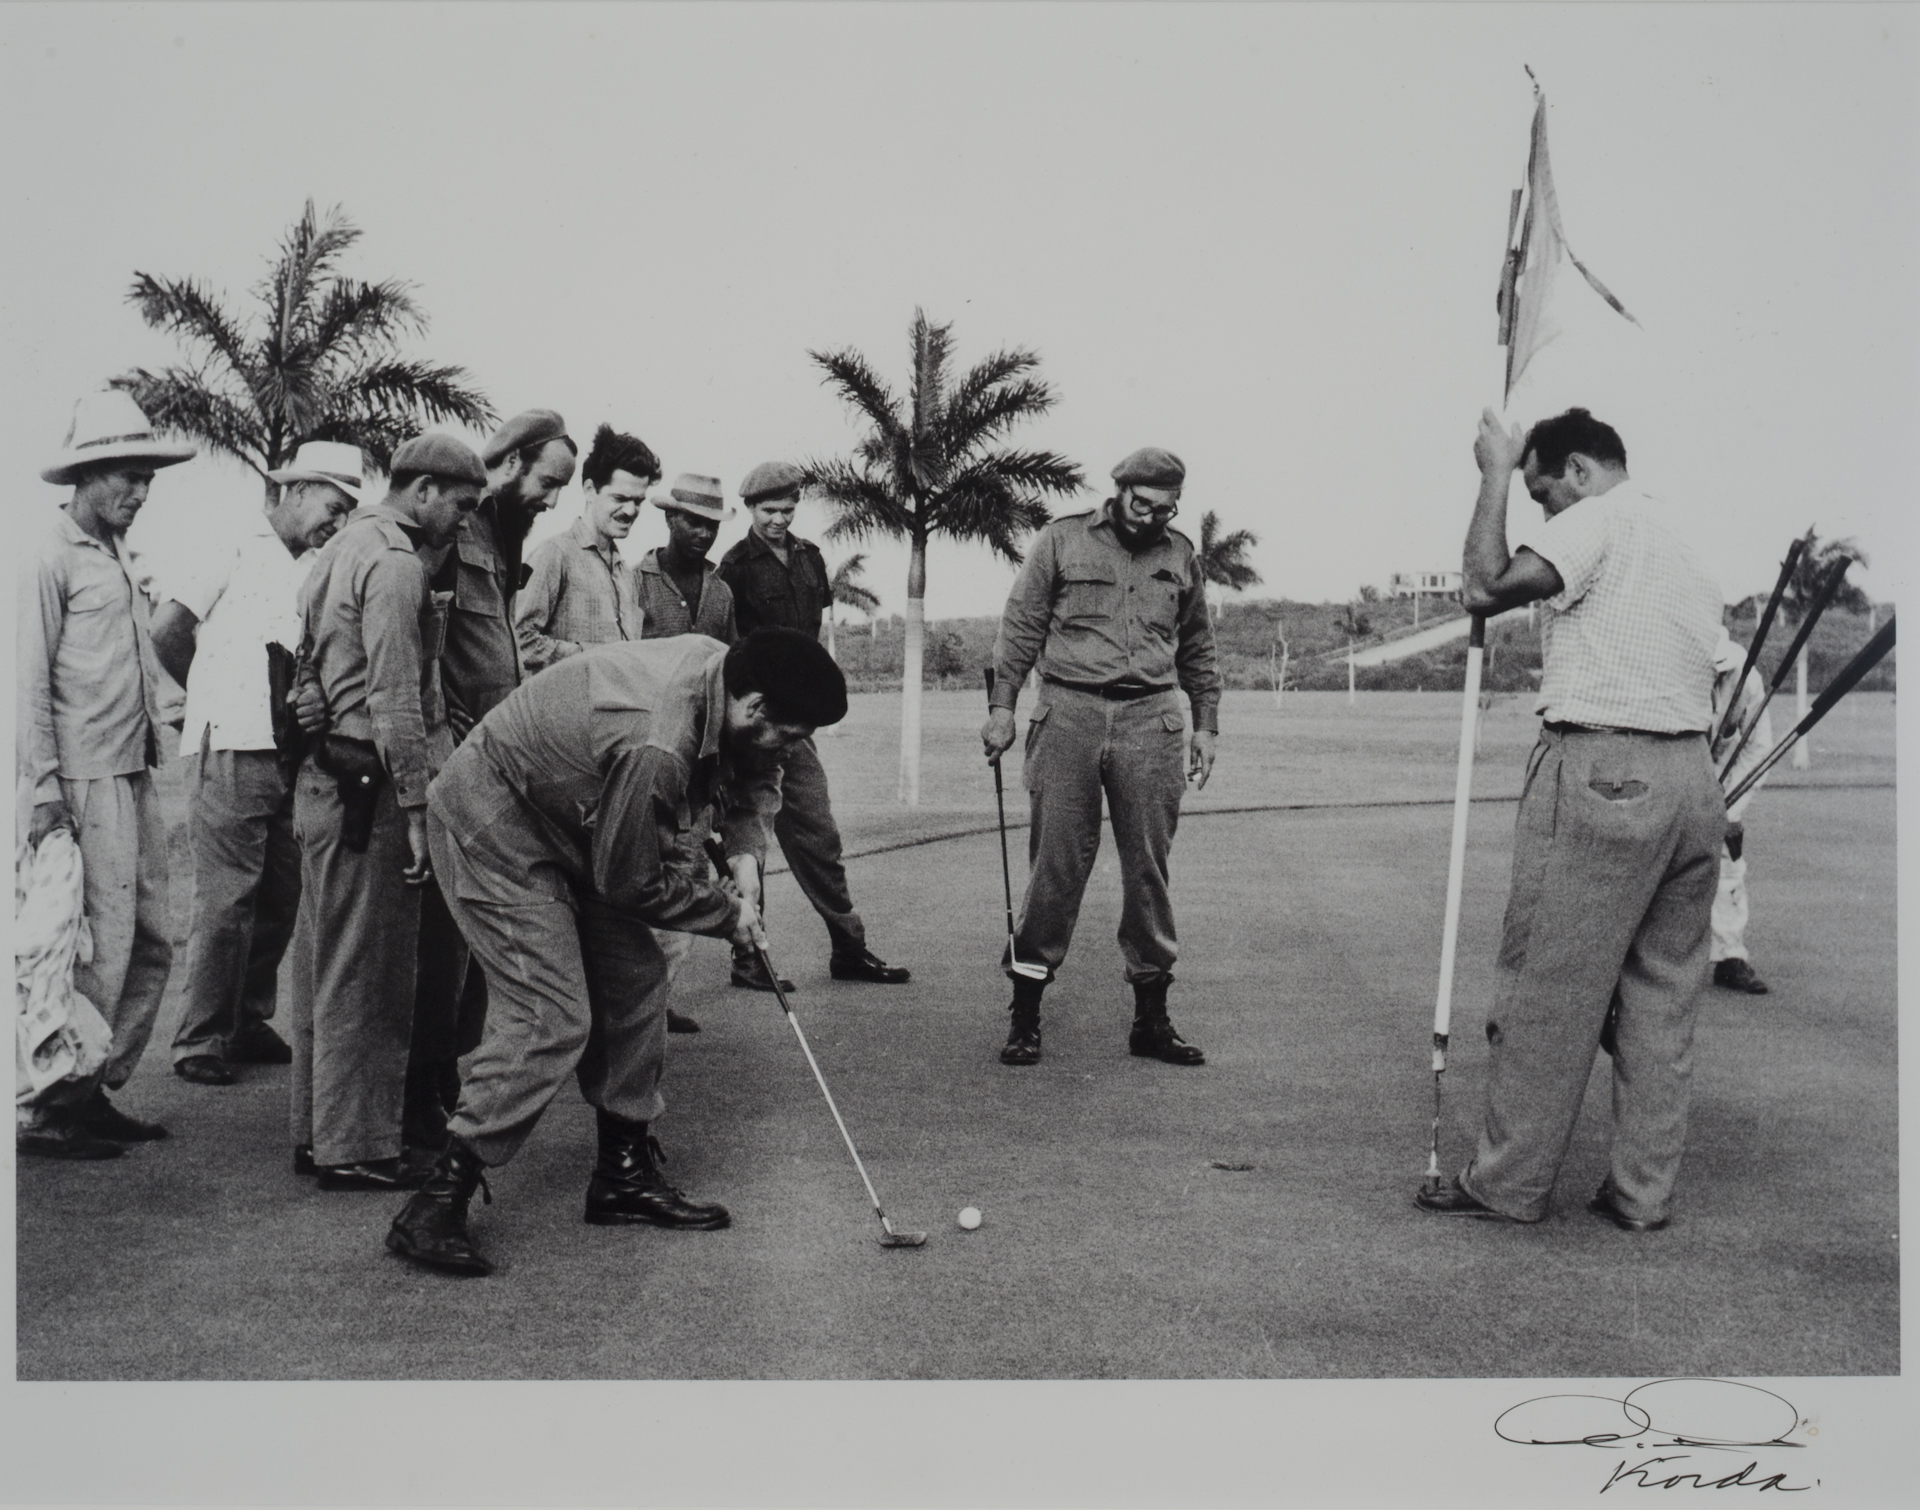 Che Guevara playing golf with Fidel Castro by Korda (1959)